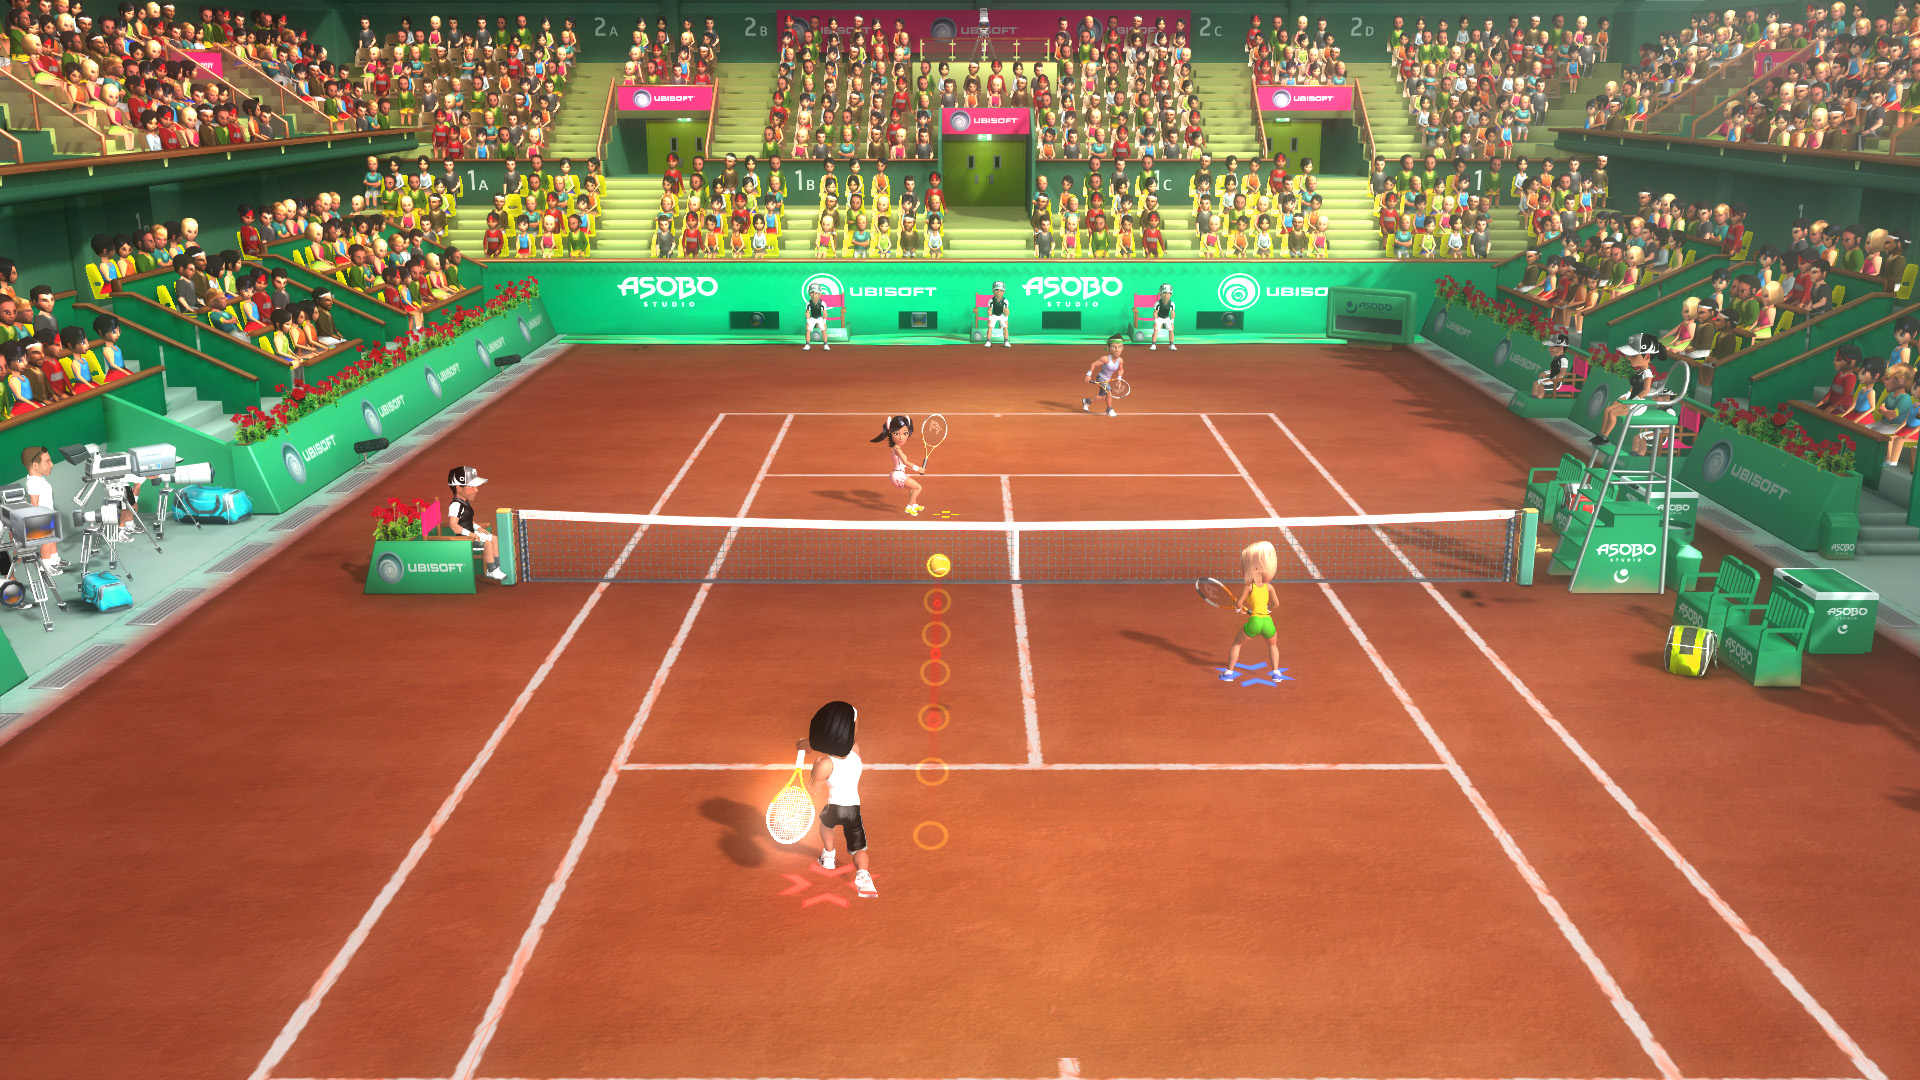 Racquet sports for move is ps3 sports tennis